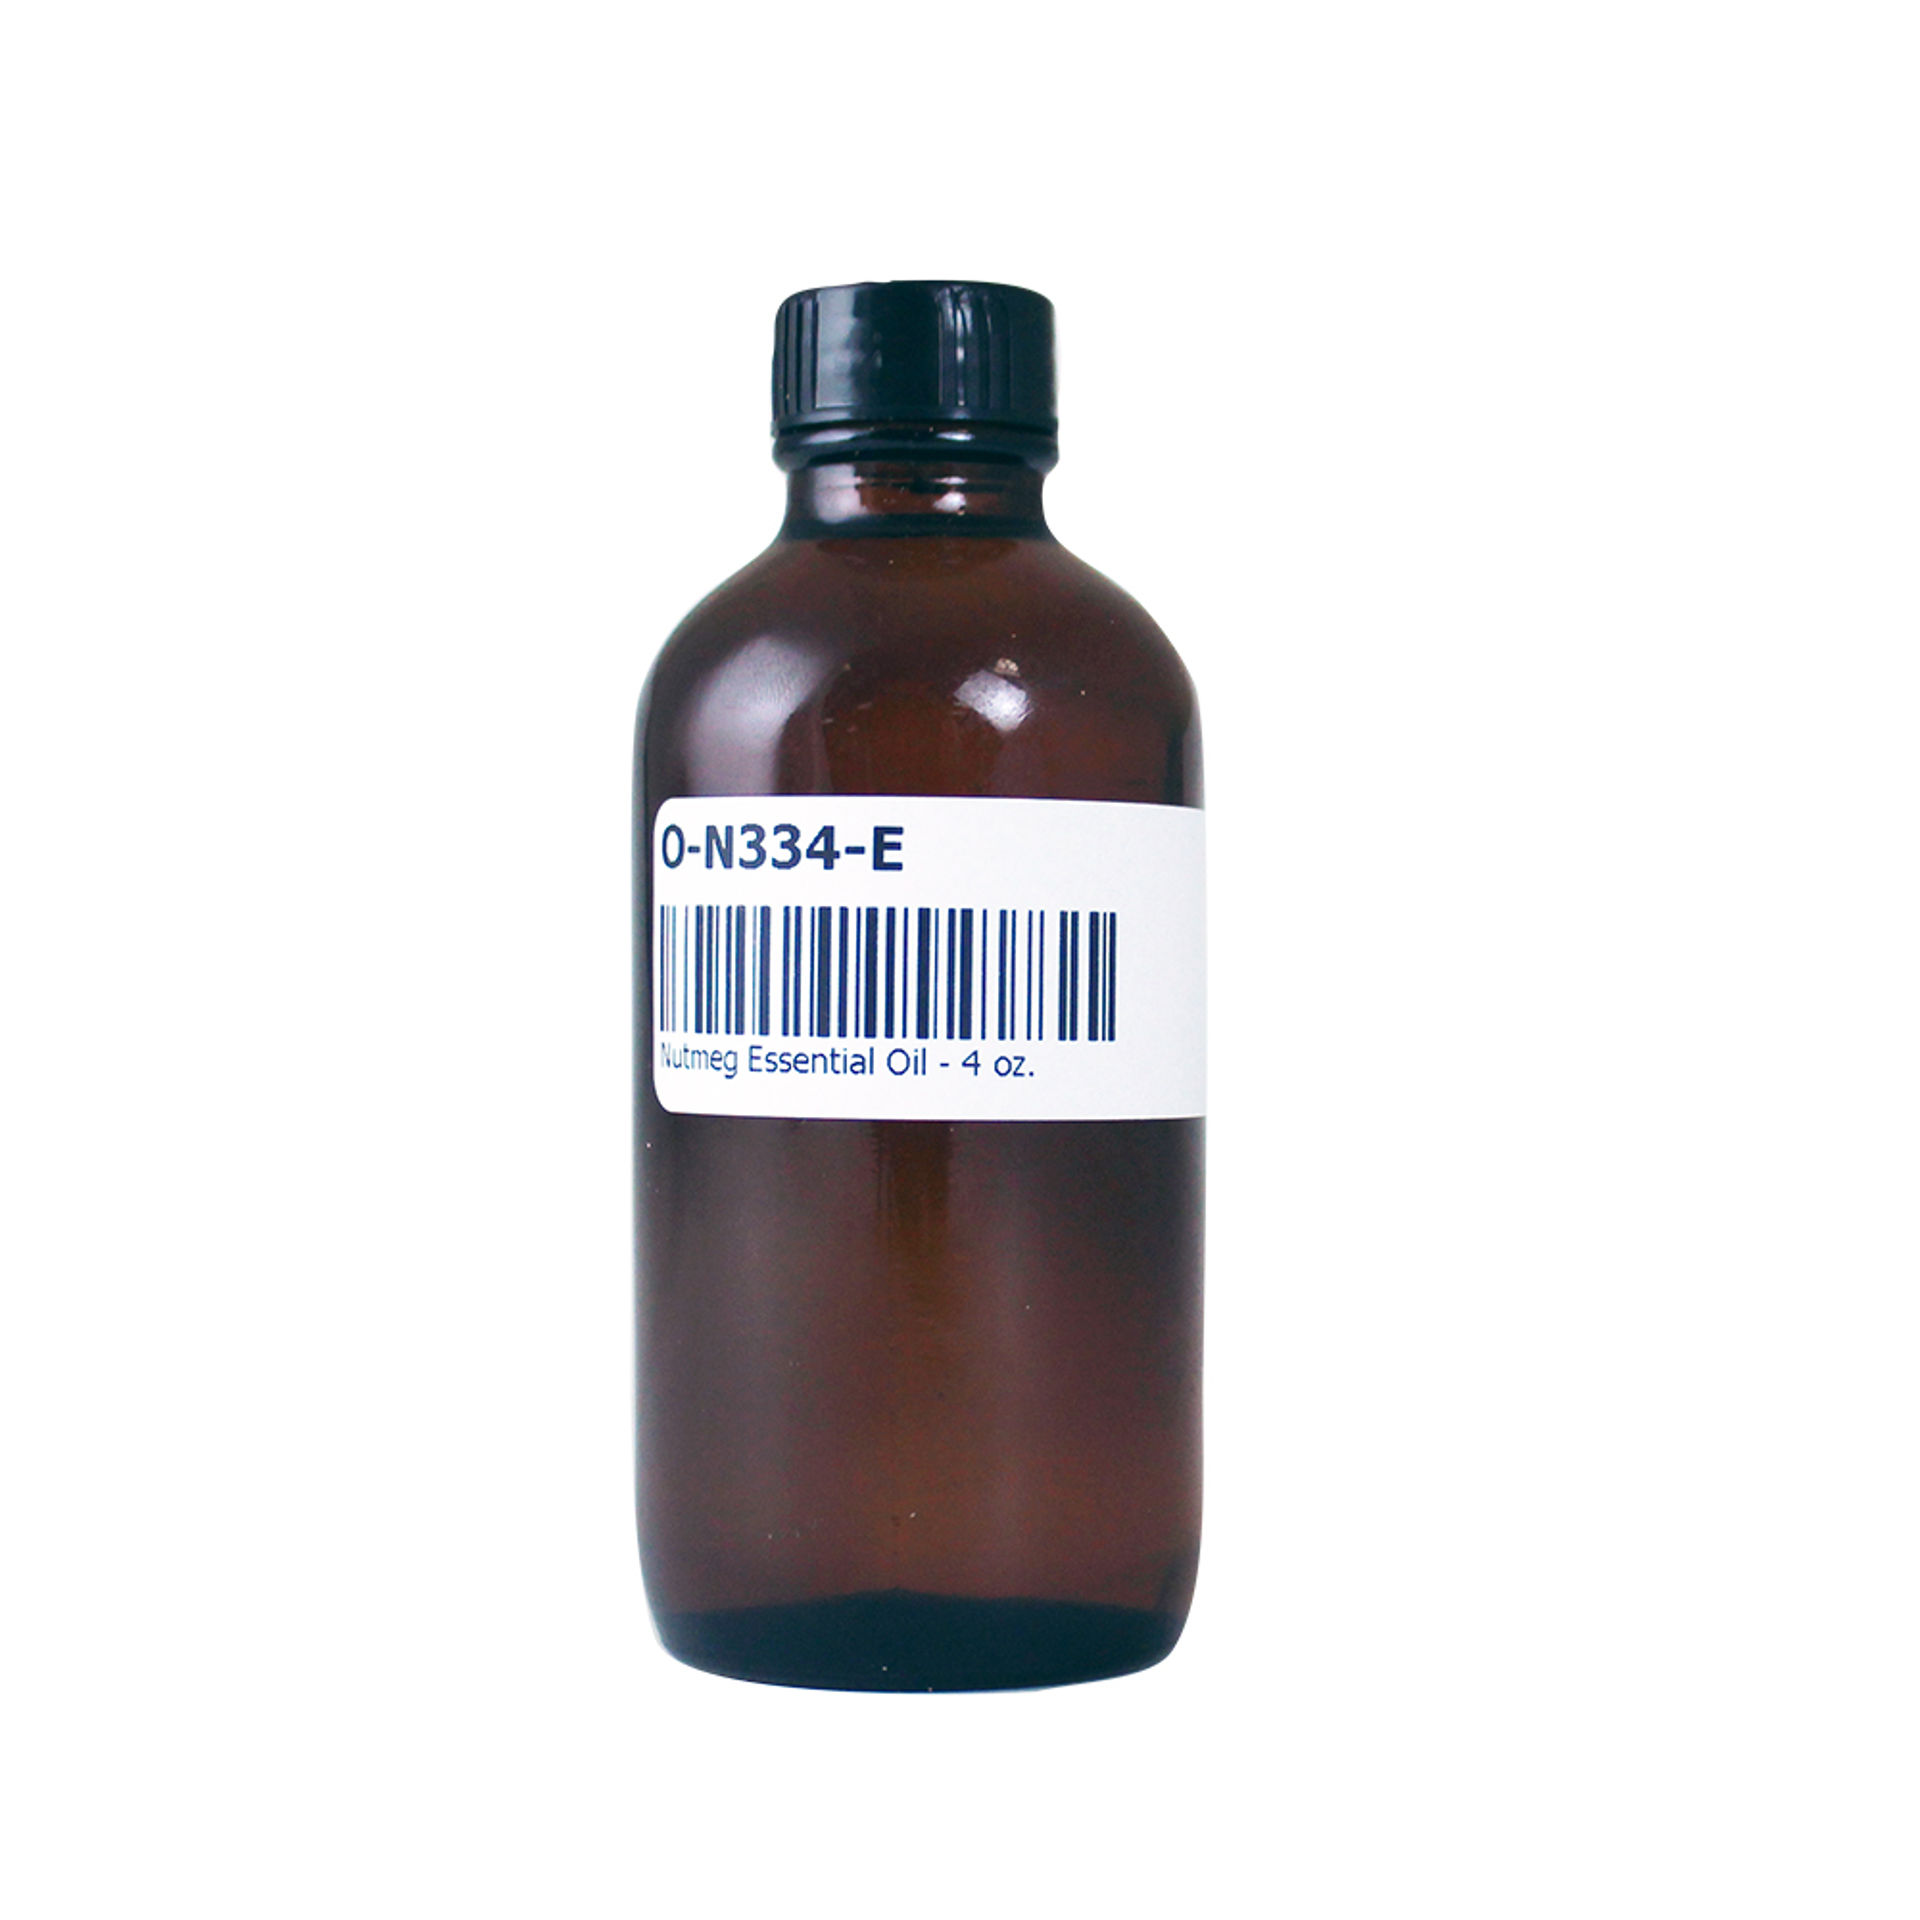 Picture of Nutmeg Essential Oil - 4 oz.